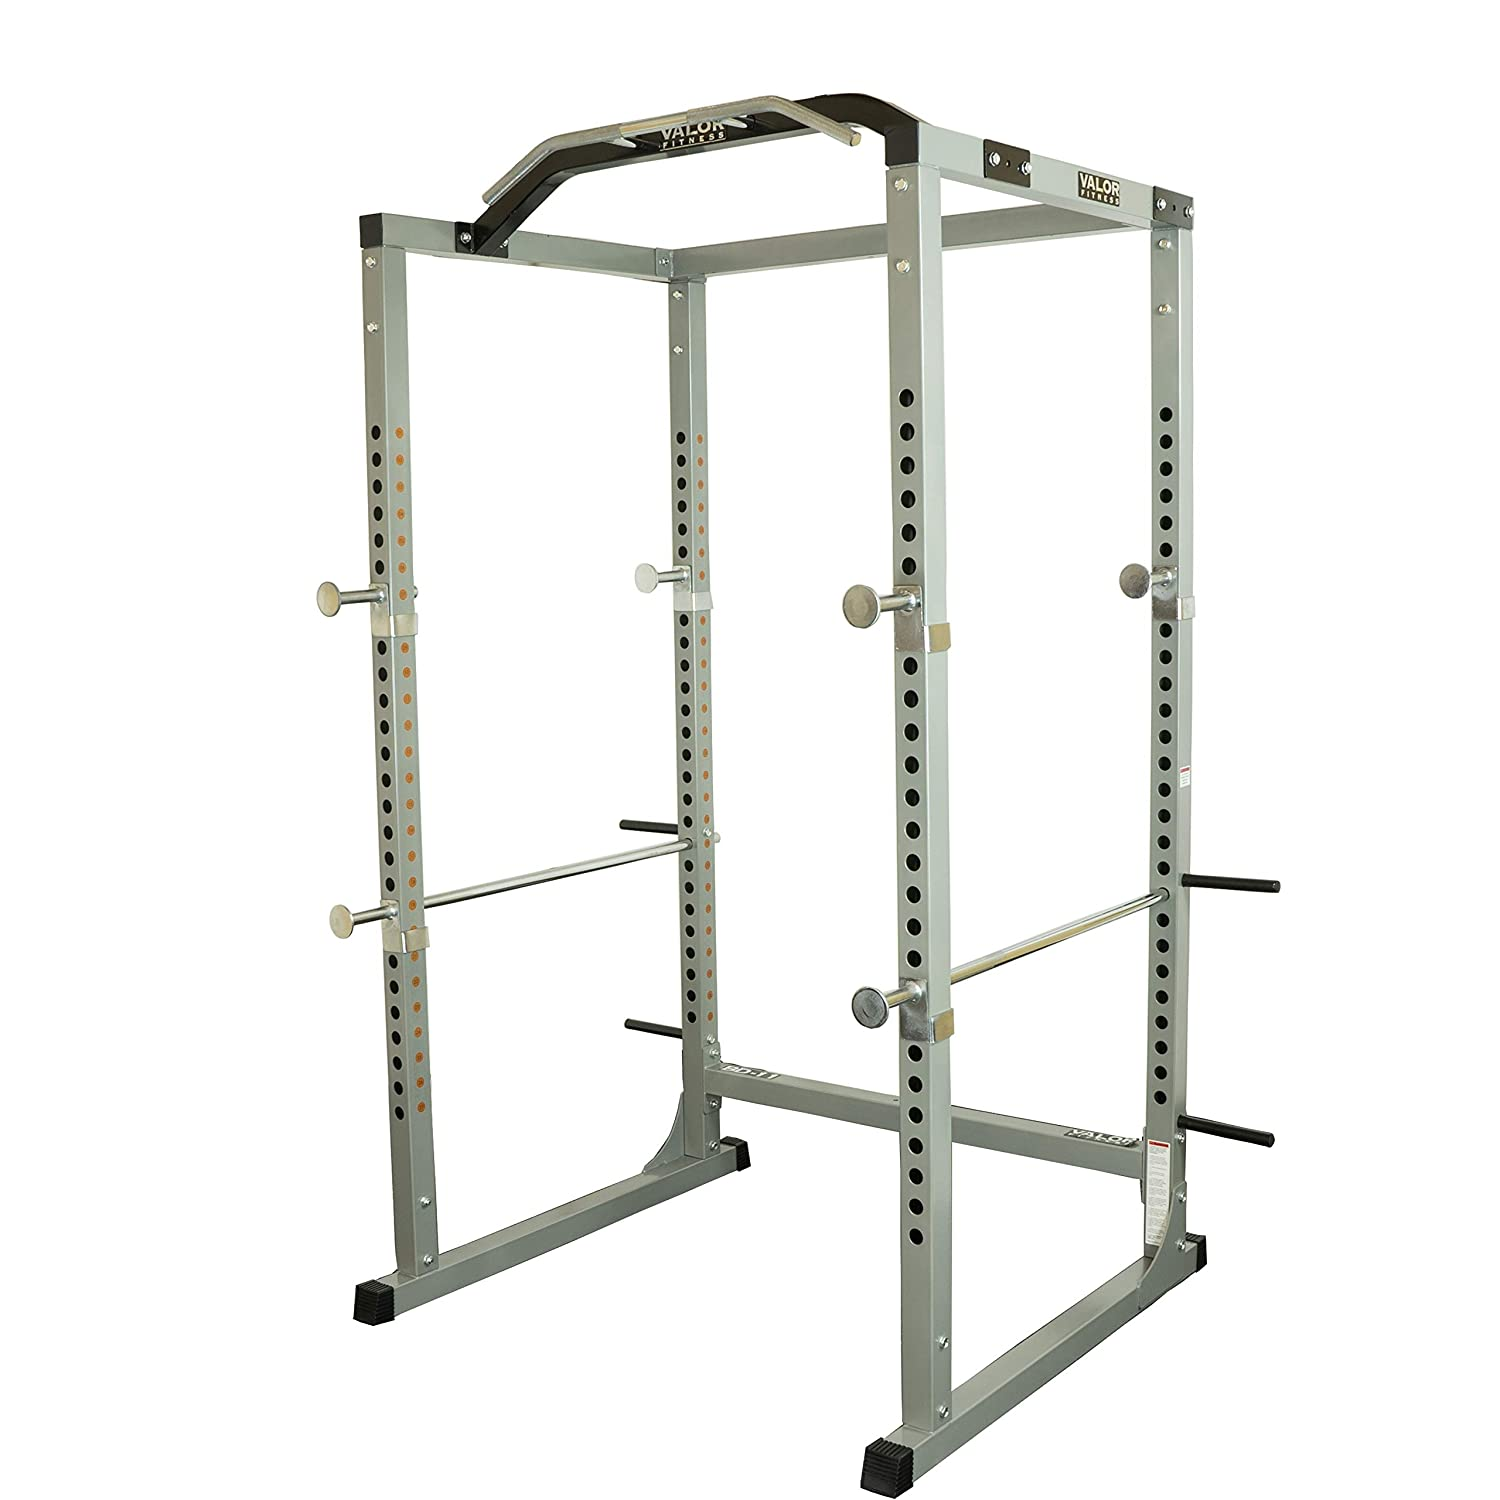 Valor Fitness BD-11 Hard Power Rack w Available Bundle Options for a Complete Home Gym